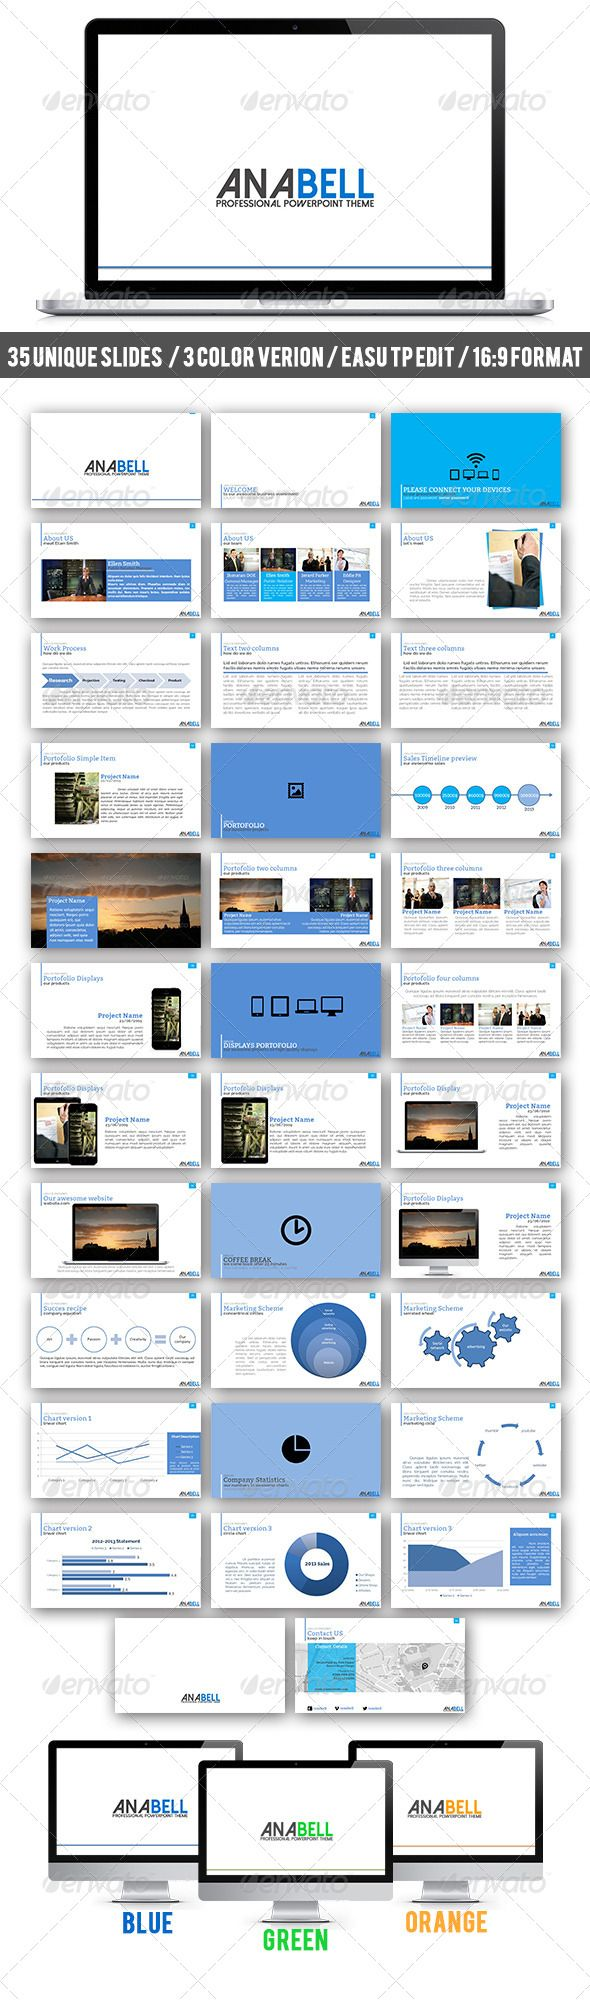 Anabell PowerPoint Theme (Powerpoint Templates) #Powerpoint #Powerpoint_Template #Presentation